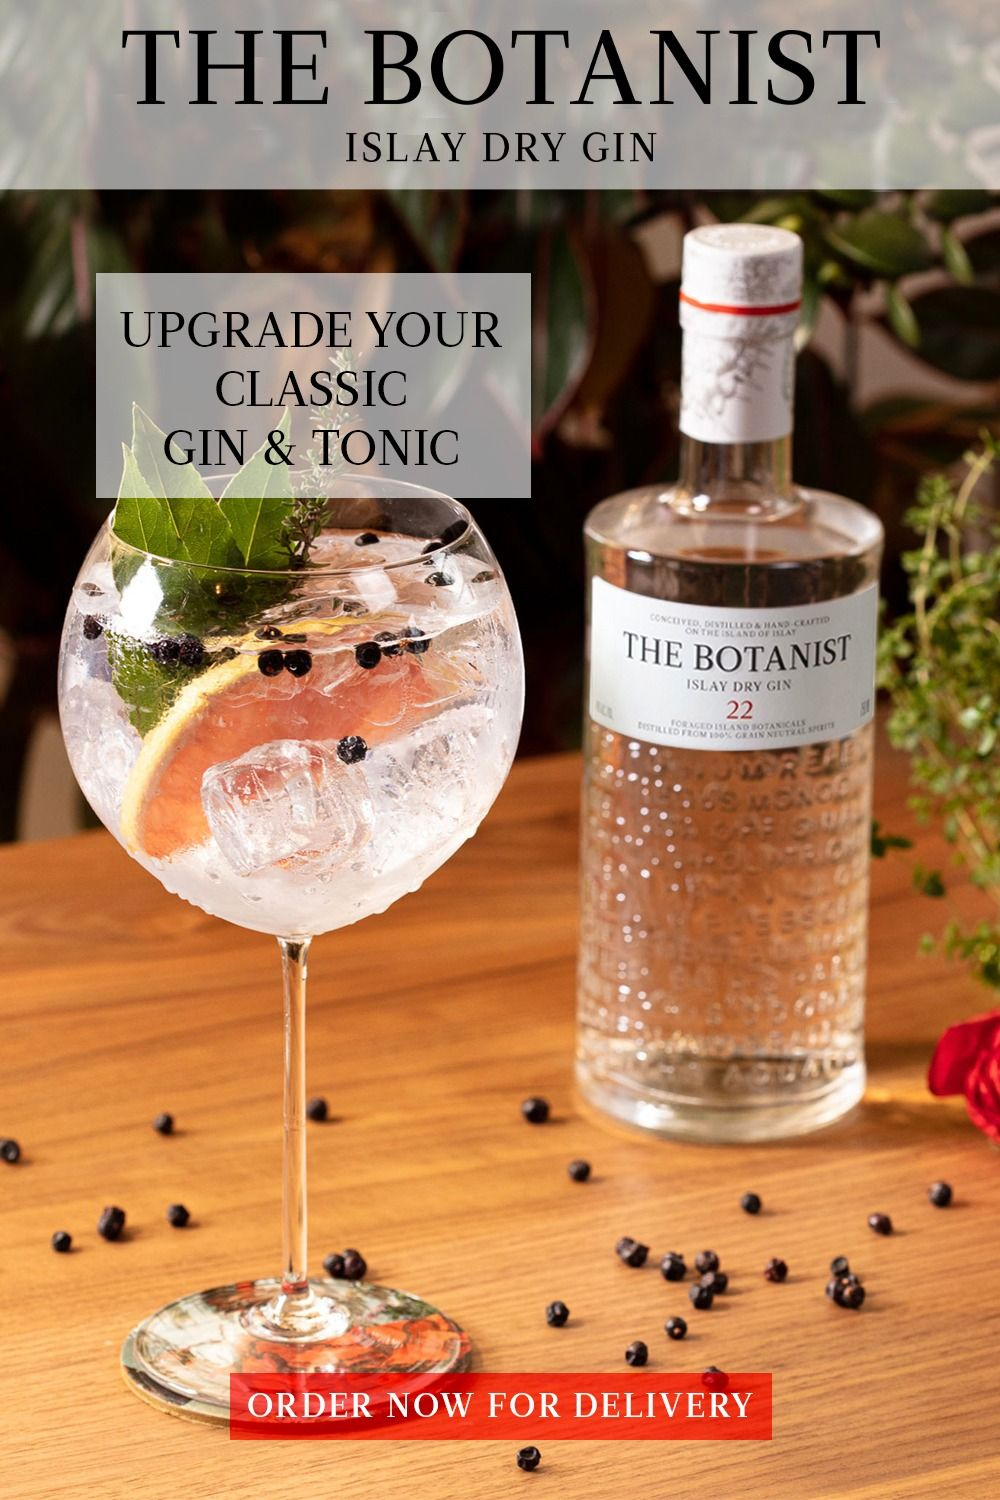 The Botanist Gin Tonic Recipes For Summer Dry Gin Gin Tonic Recipe Botanist Gin